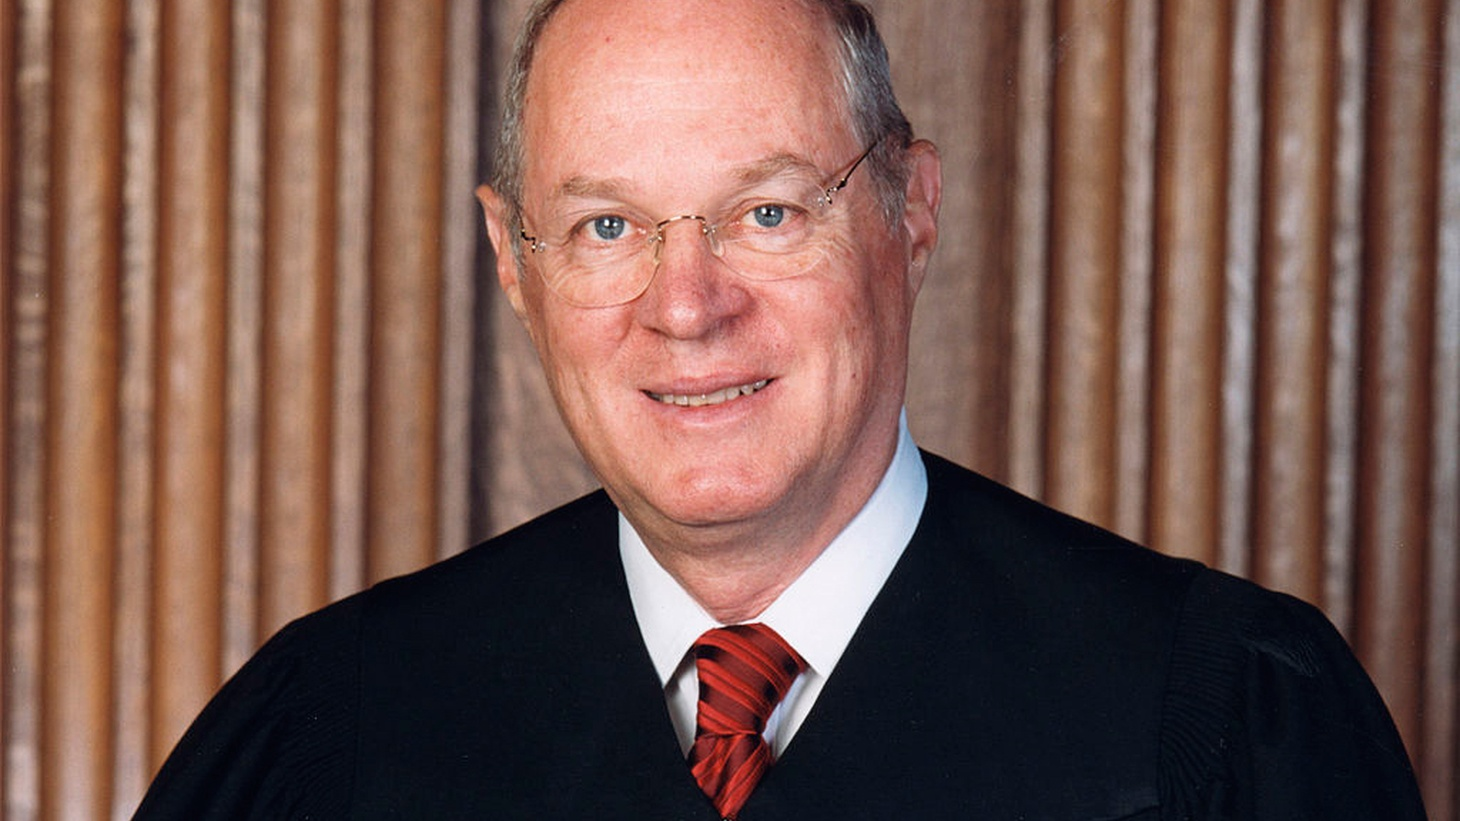 Justice Anthony Kennedy announced today that he will retire. Even though Kennedy was appointed by Republican President Ronald Reagan, he was seen the court's swing vote.